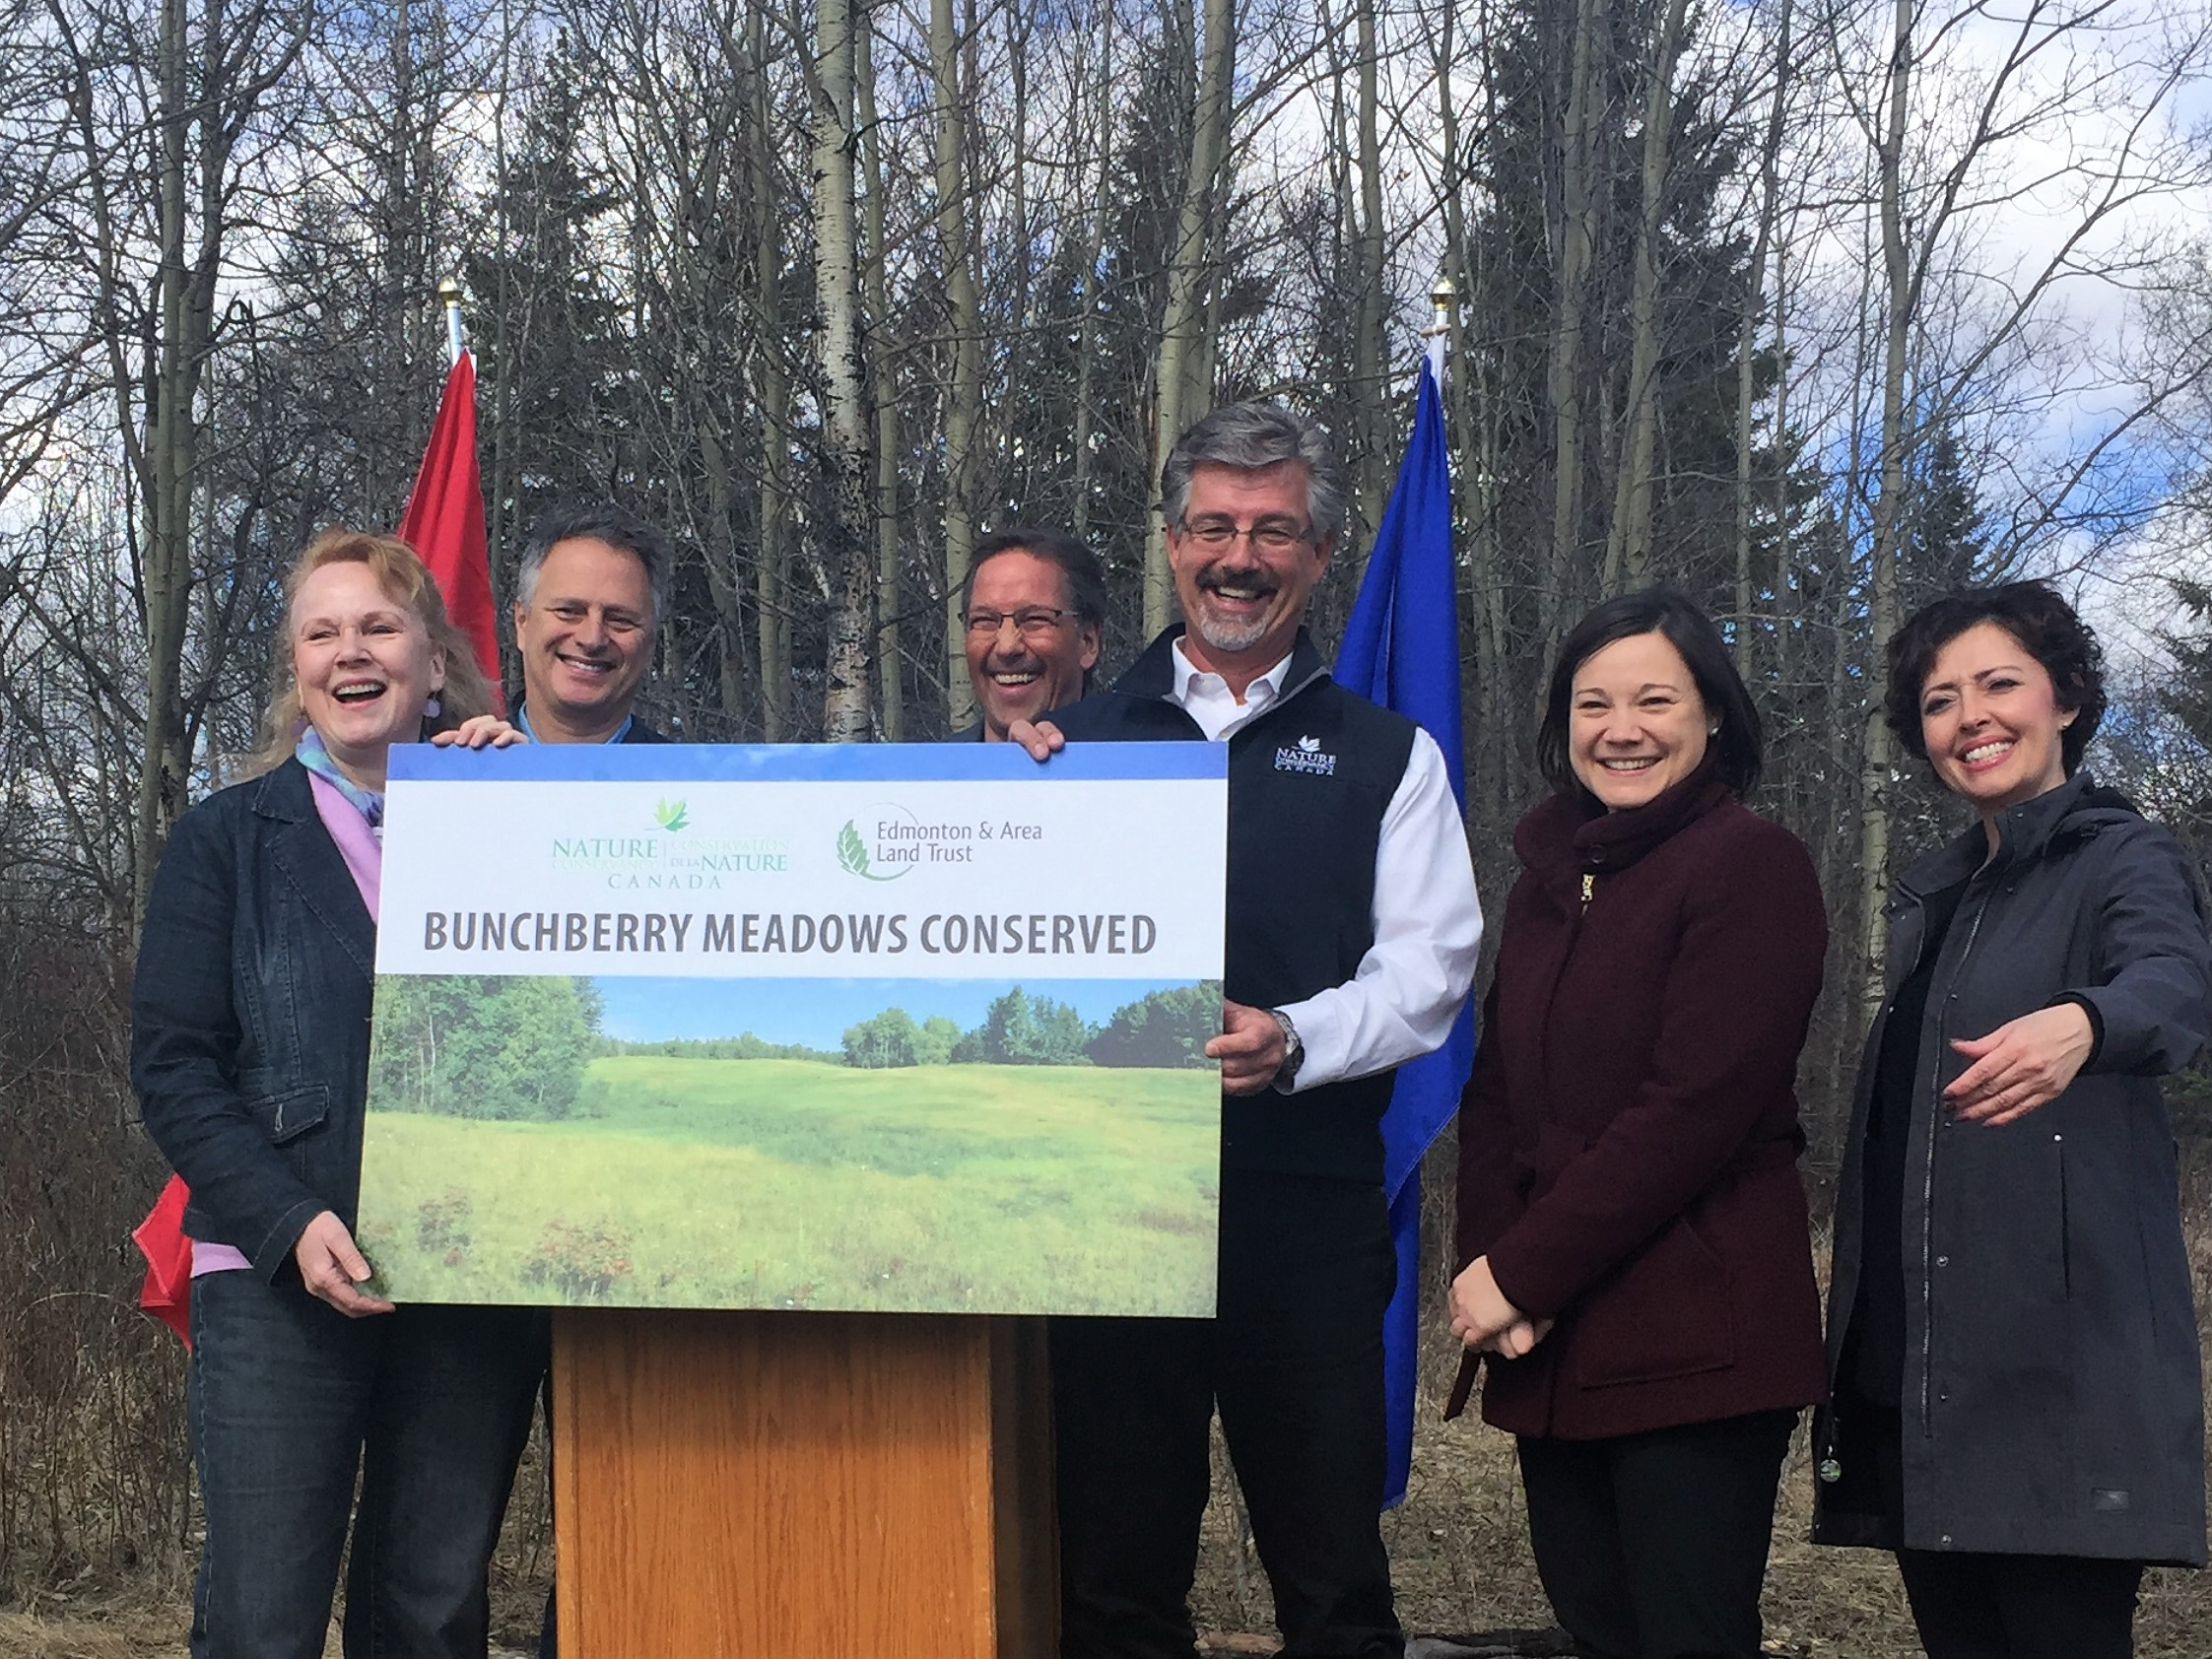 Left to right: Pam Wight, EALT ED, Kim Laskin, donor families, Rod Sheigac, Mayor of Parkland County, Bob Demulder, NCC VP, Shannon Phillips, Minister, AnnLisa Jensen, Parkland County Councillor